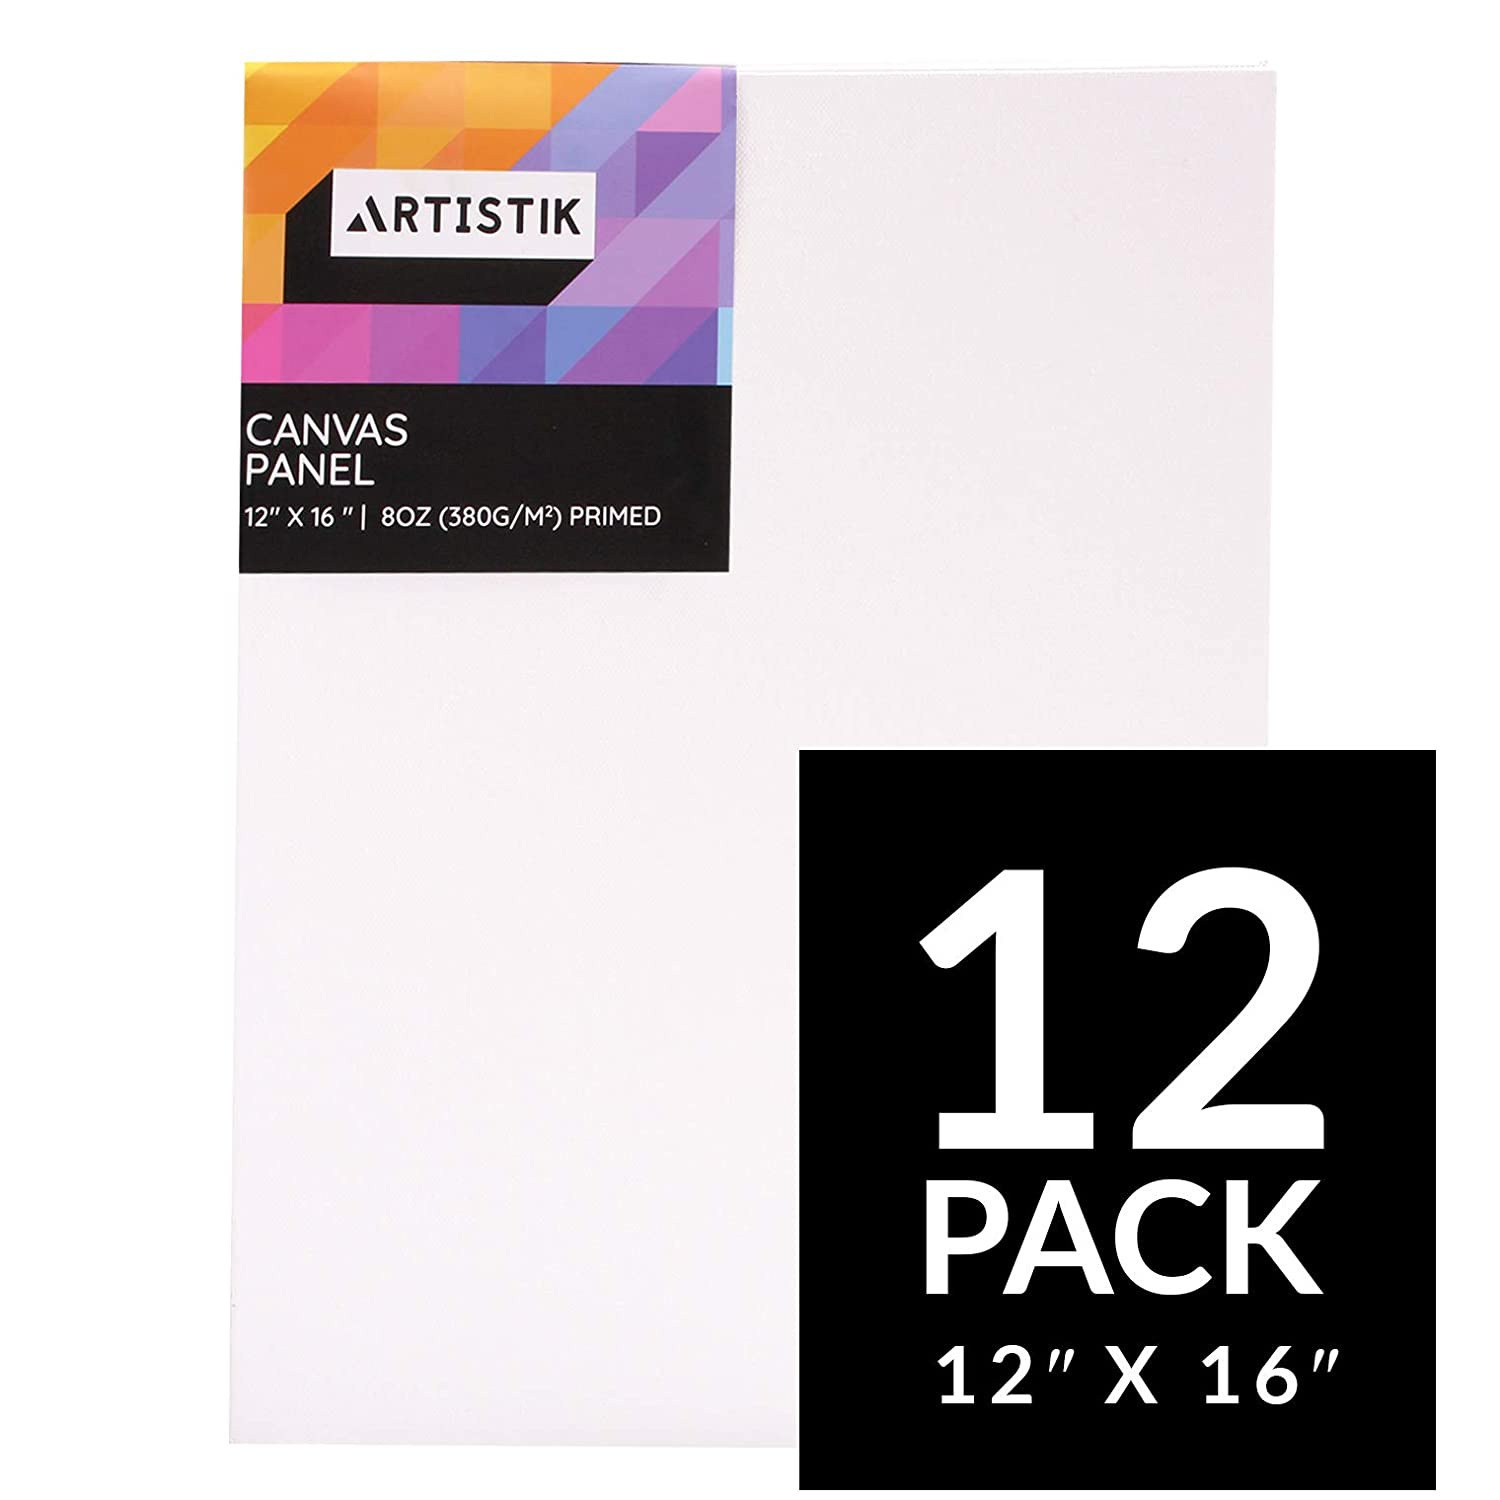 Canvas Panels - Artist Canvas Panel Boards for Painting Quality Acid Free Blank Flat Canvases Paint Boards Quality Art Paint Supply by Artistik (16 x 12